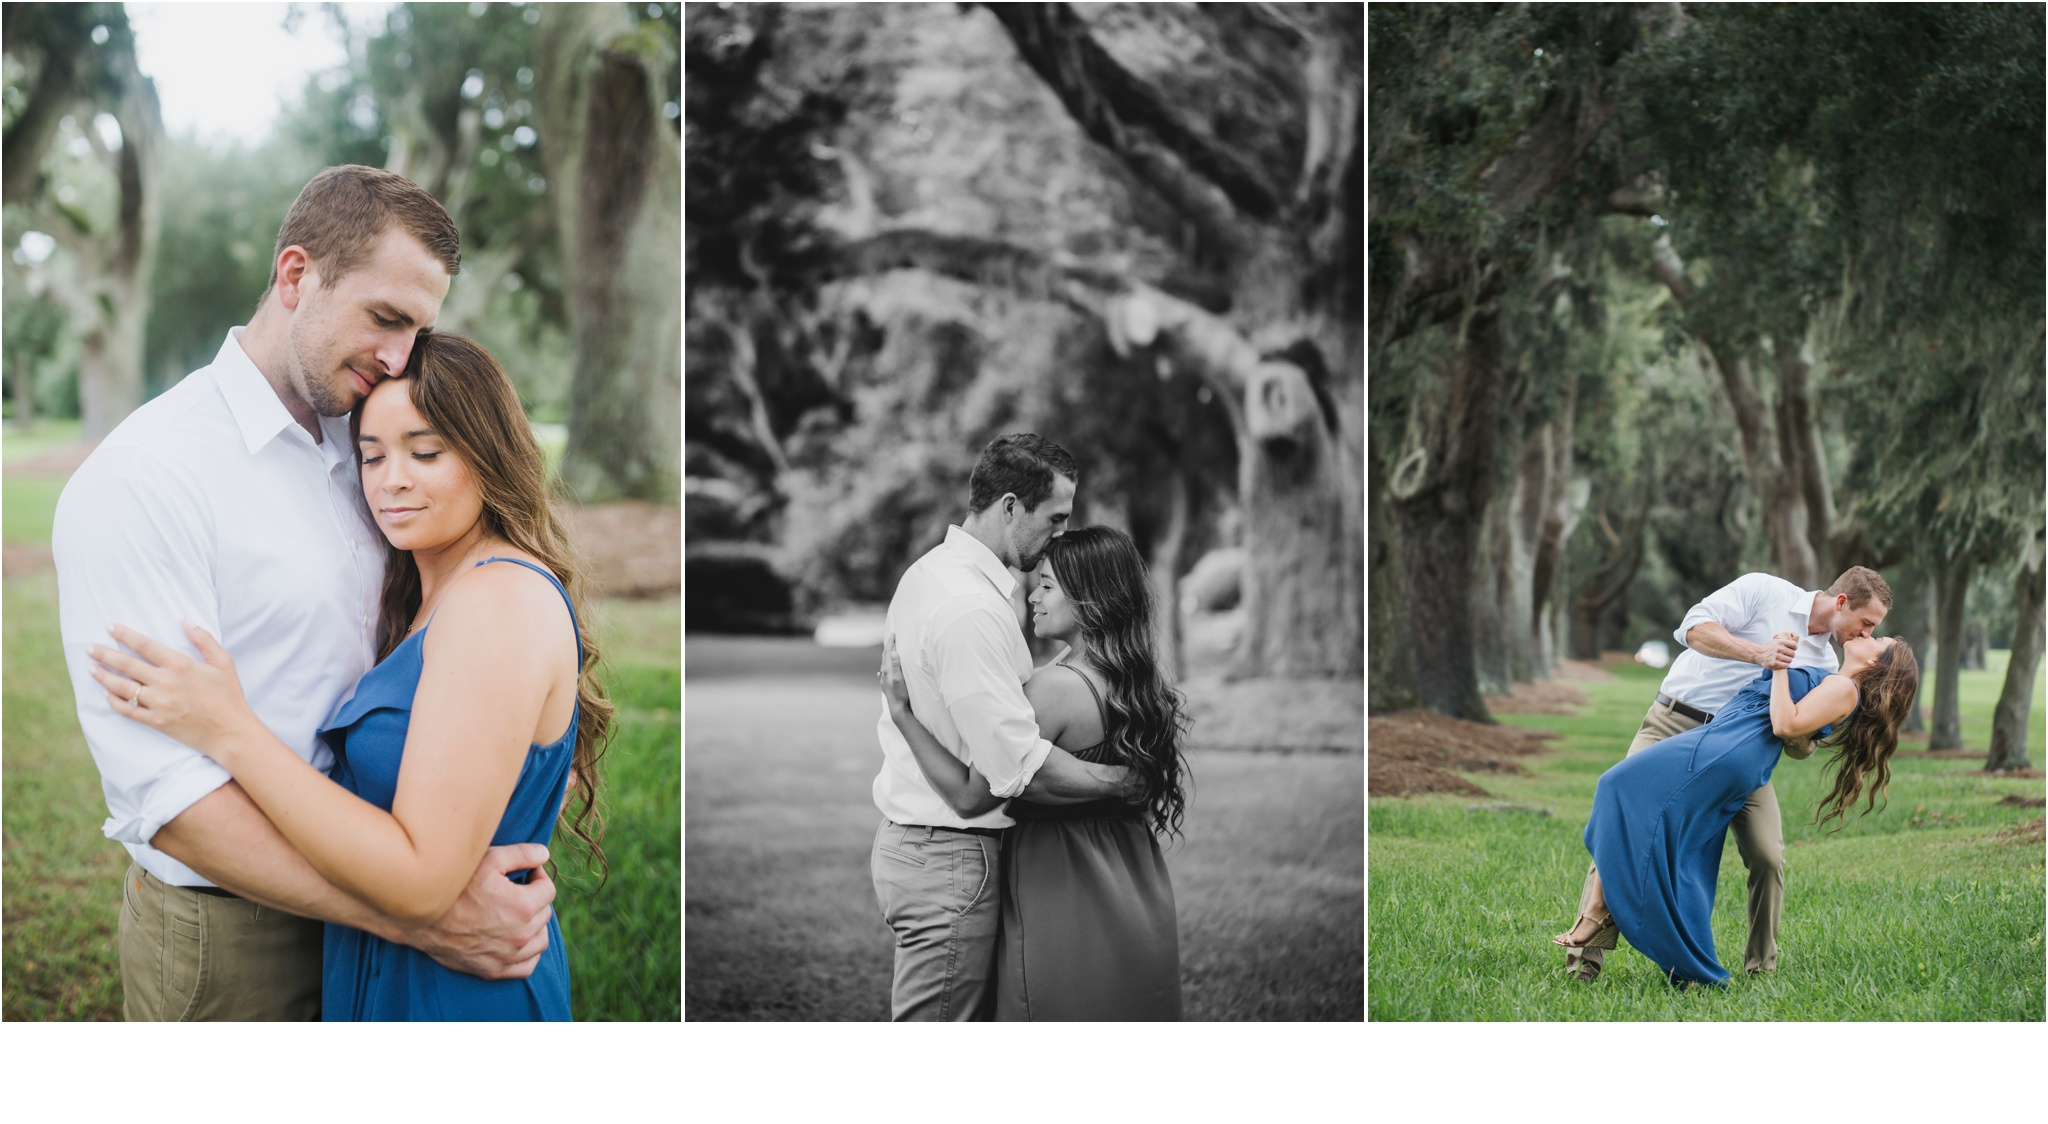 Rainey_Gregg_Photography_St._Simons_Island_Georgia_California_Wedding_Portrait_Photography_1446.jpg